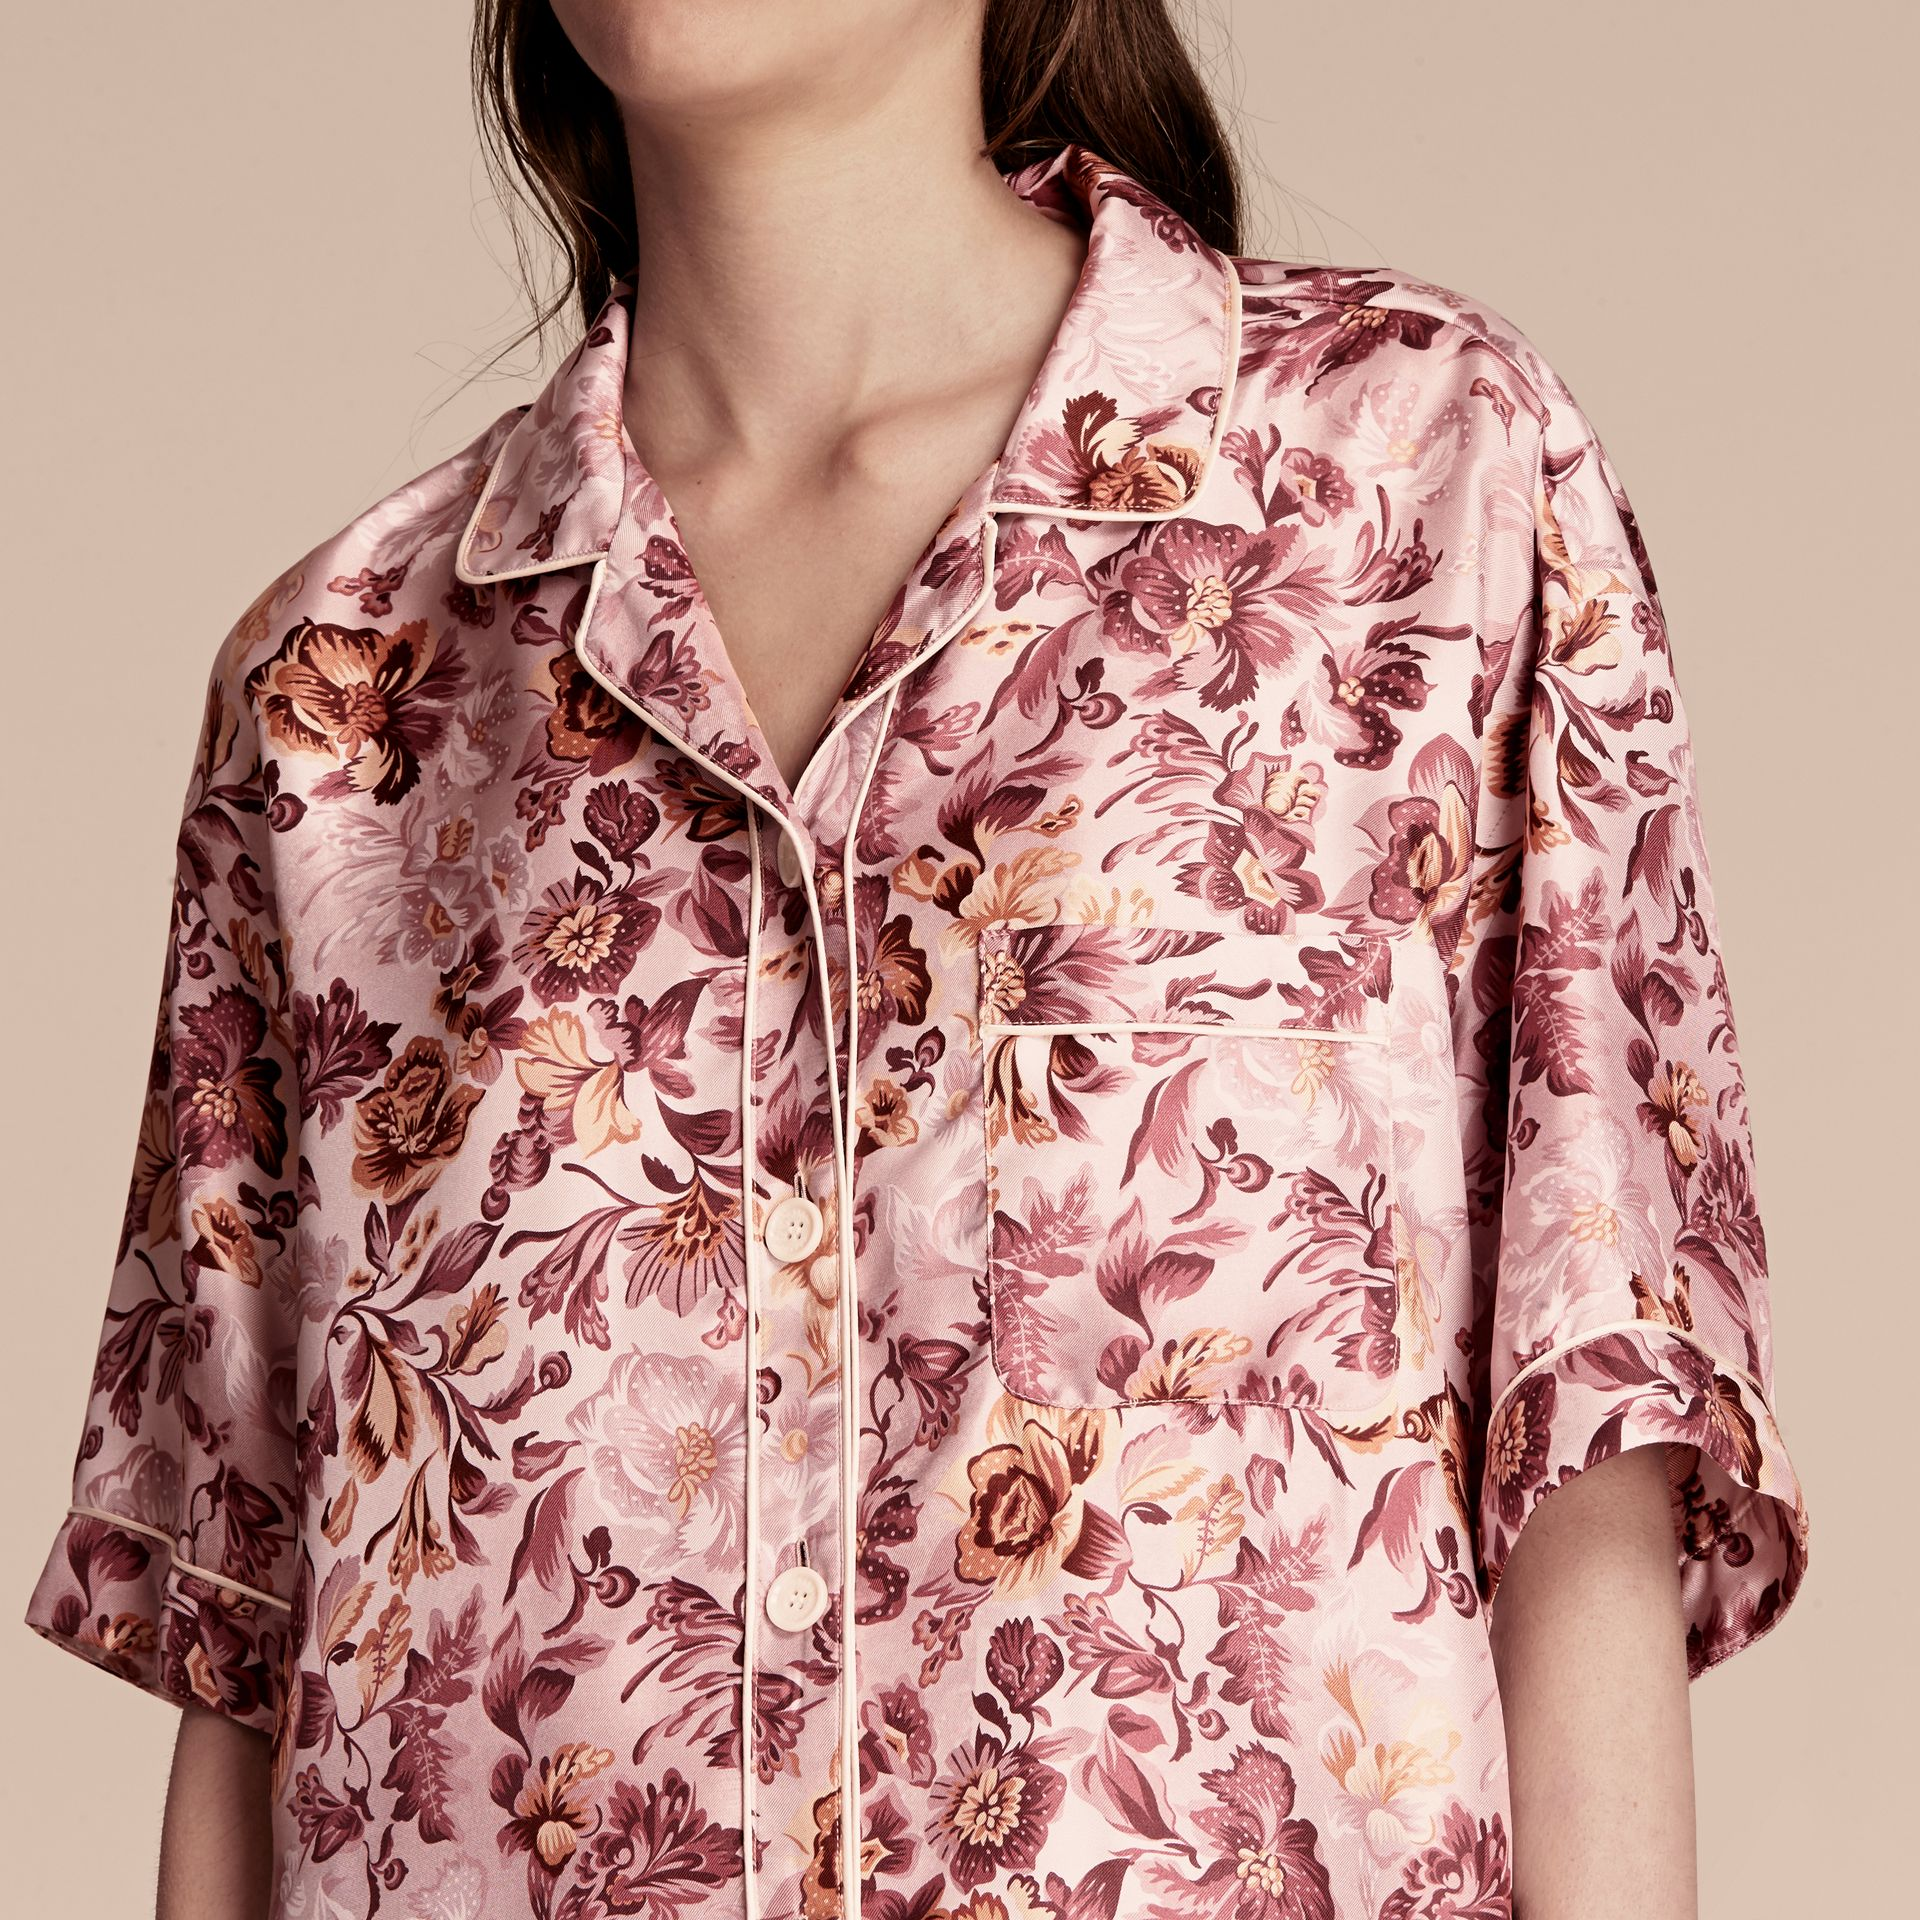 Pink heather Short-sleeved Floral Print Silk Pyjama-style Shirt Pink Heather - gallery image 5